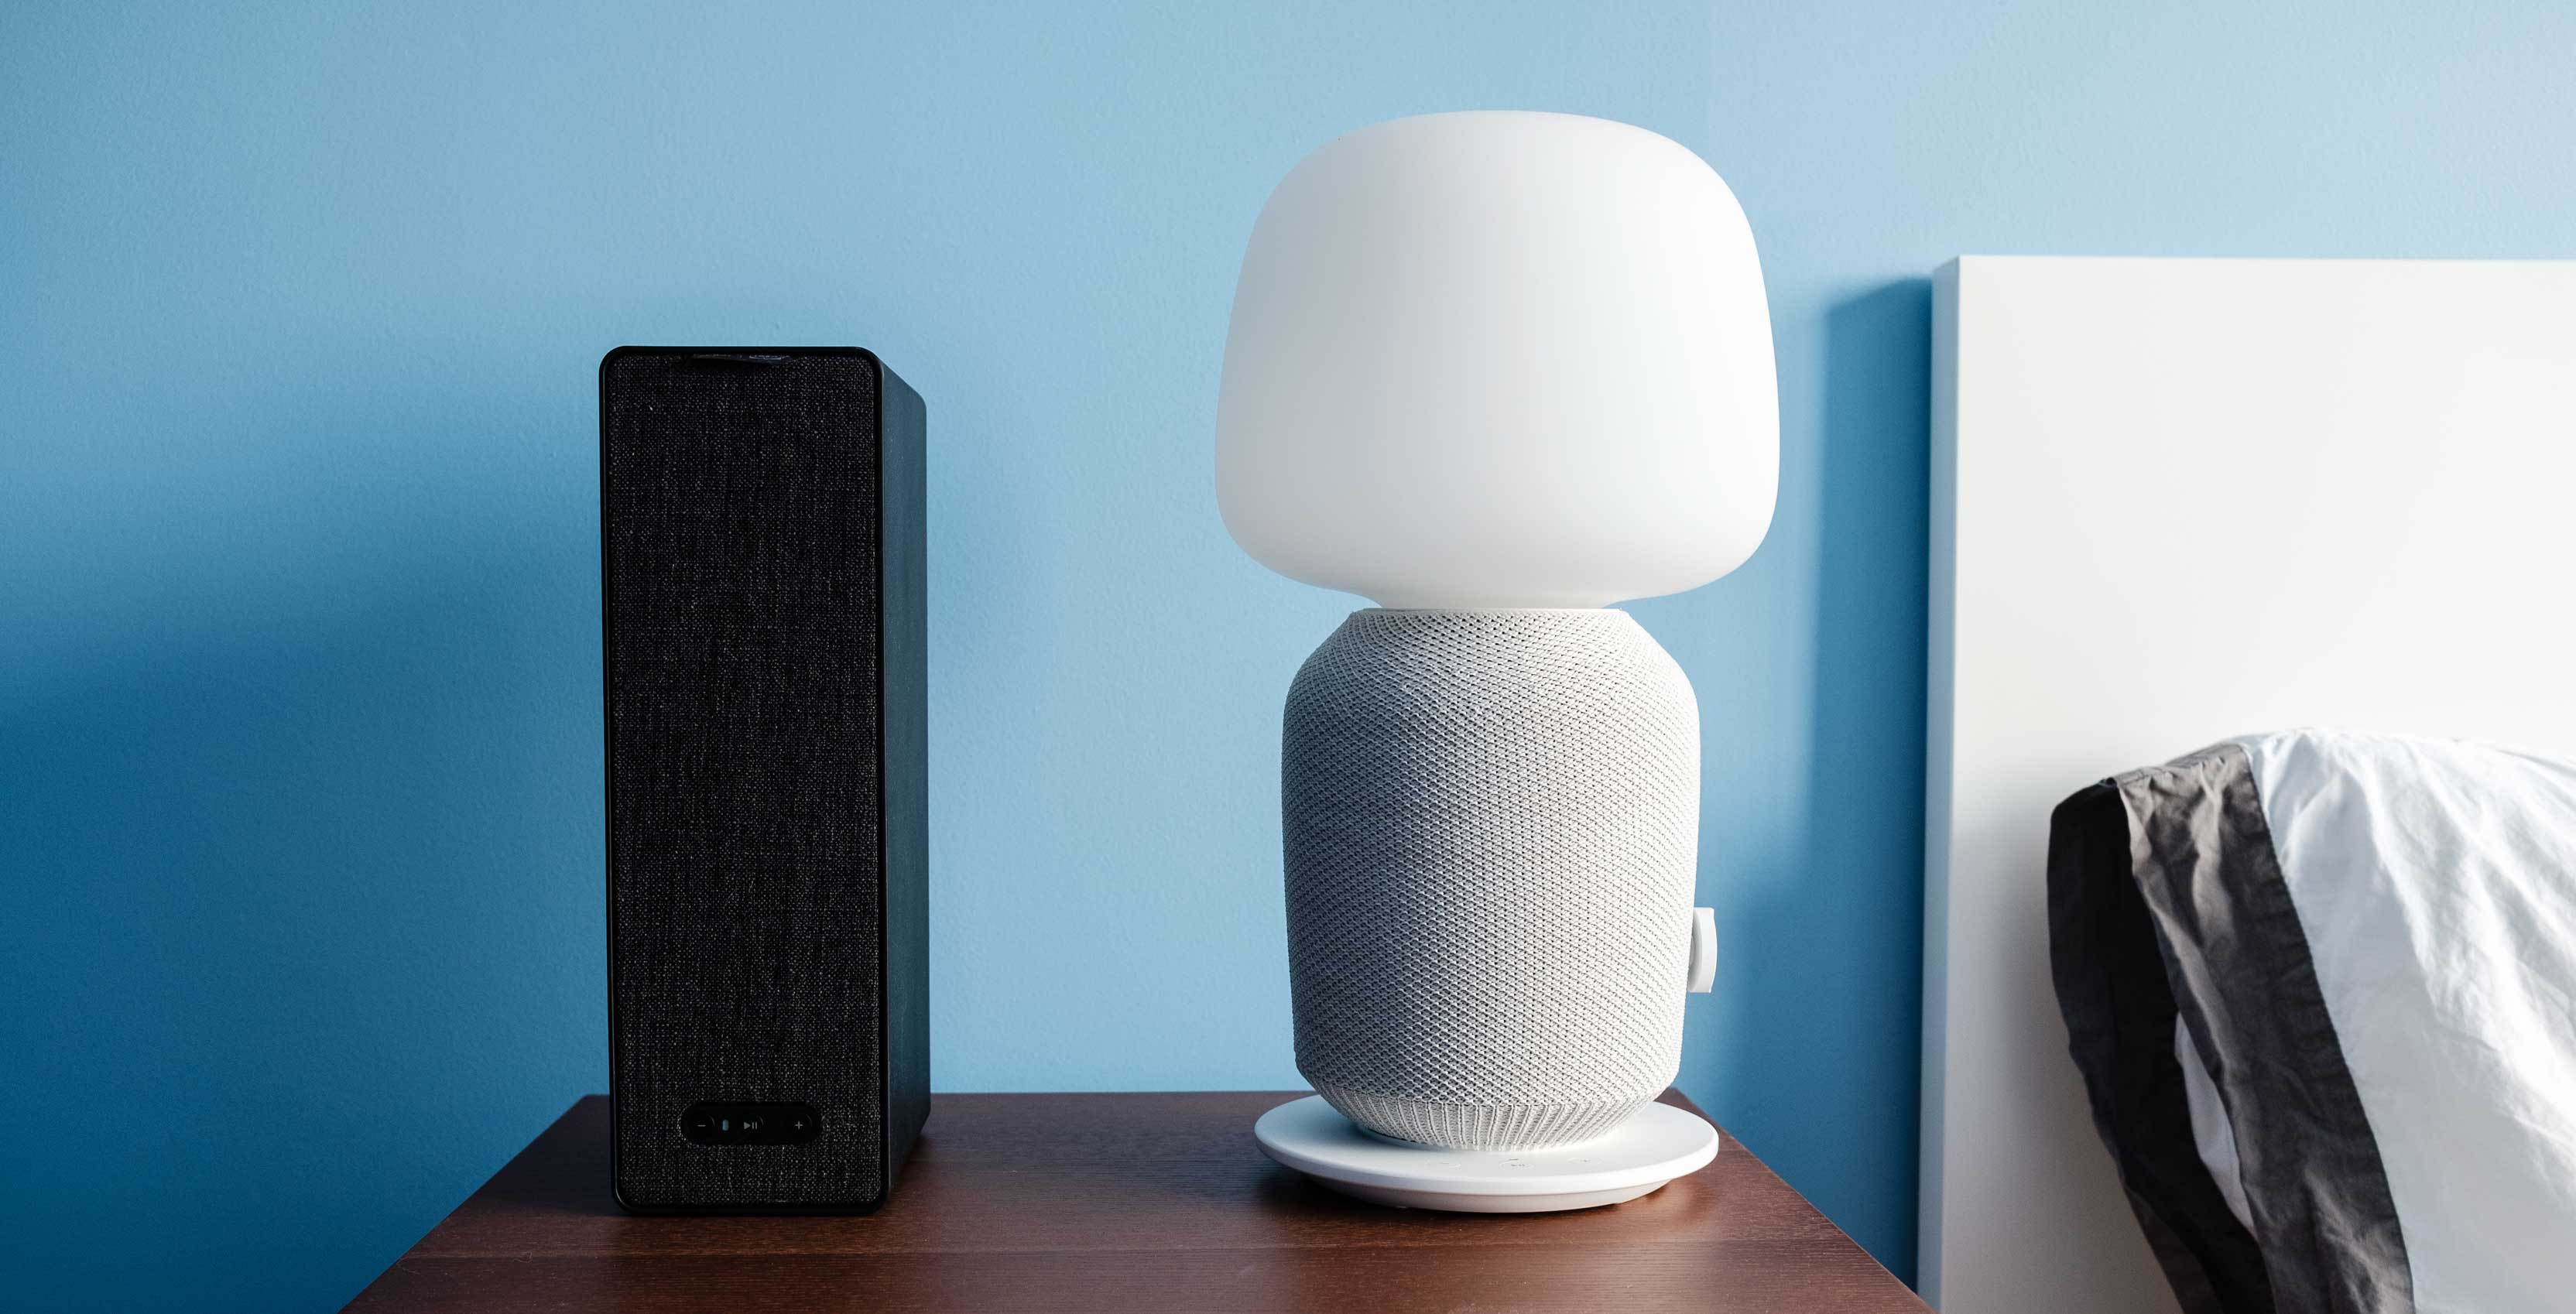 Sonos + Ikea Symfonisk Review: Speakers first, home decor second